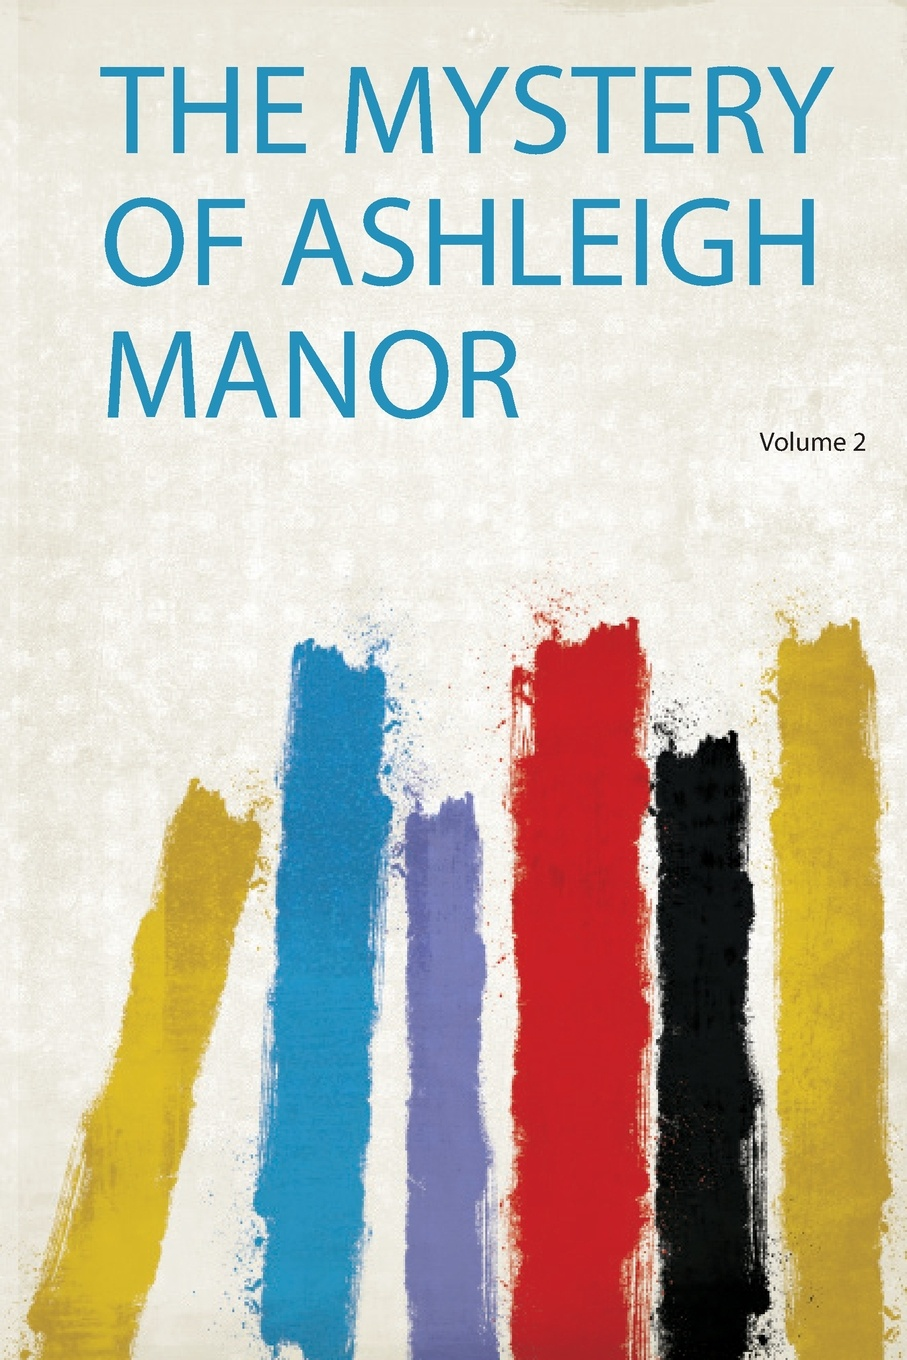 The Mystery of Ashleigh Manor